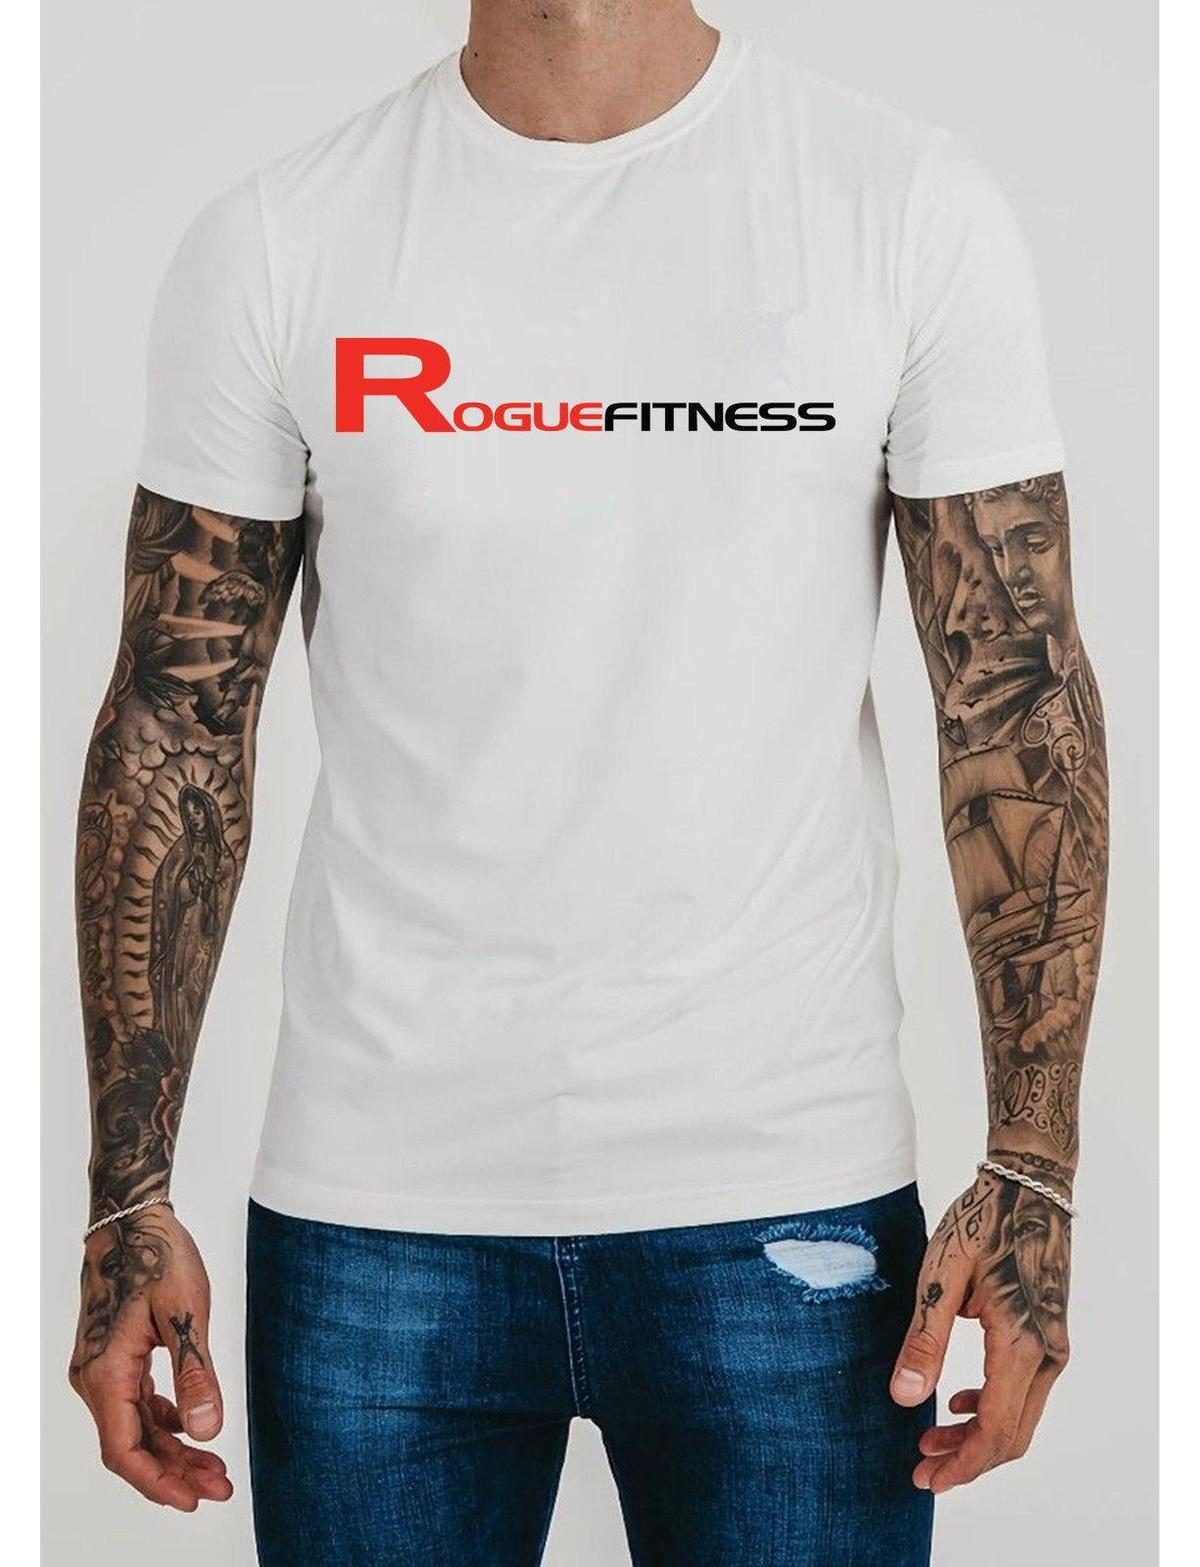 Vintage Rogue Fitness Tee International Men S SS Cross Short Slave T Shirt  S 2XL HOT SELL 2018 New Fashion Brand Men Tees Solid On T Shirt Tourist  Shirts ... 38f31014f340